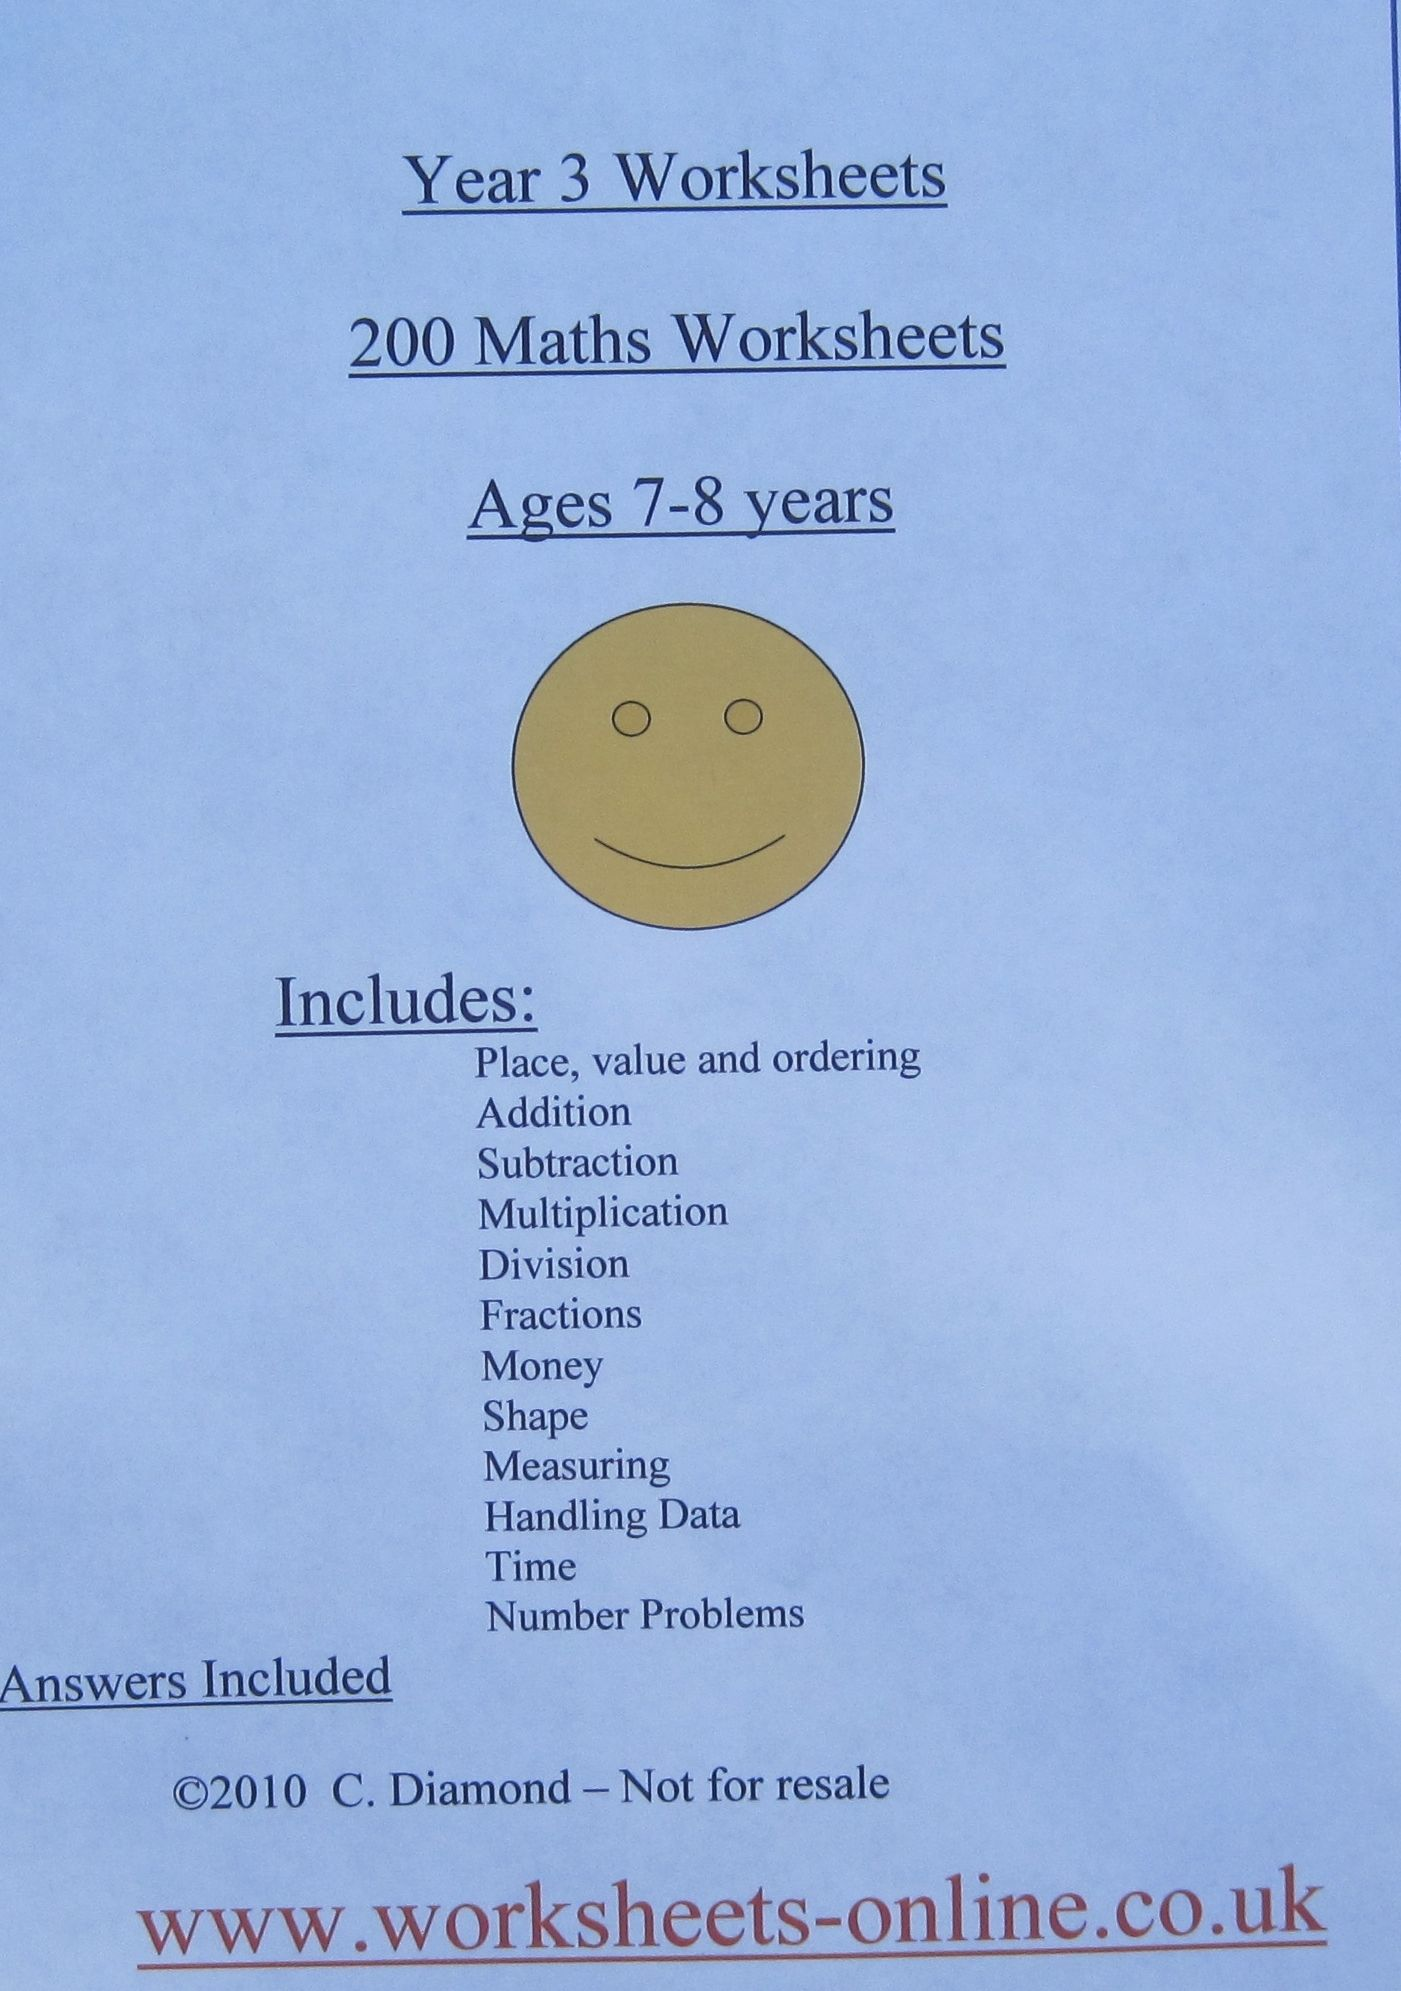 small resolution of 200 Year 3 Maths Worksheets for children aged 7 - 8 years old.   Year 3  maths worksheets